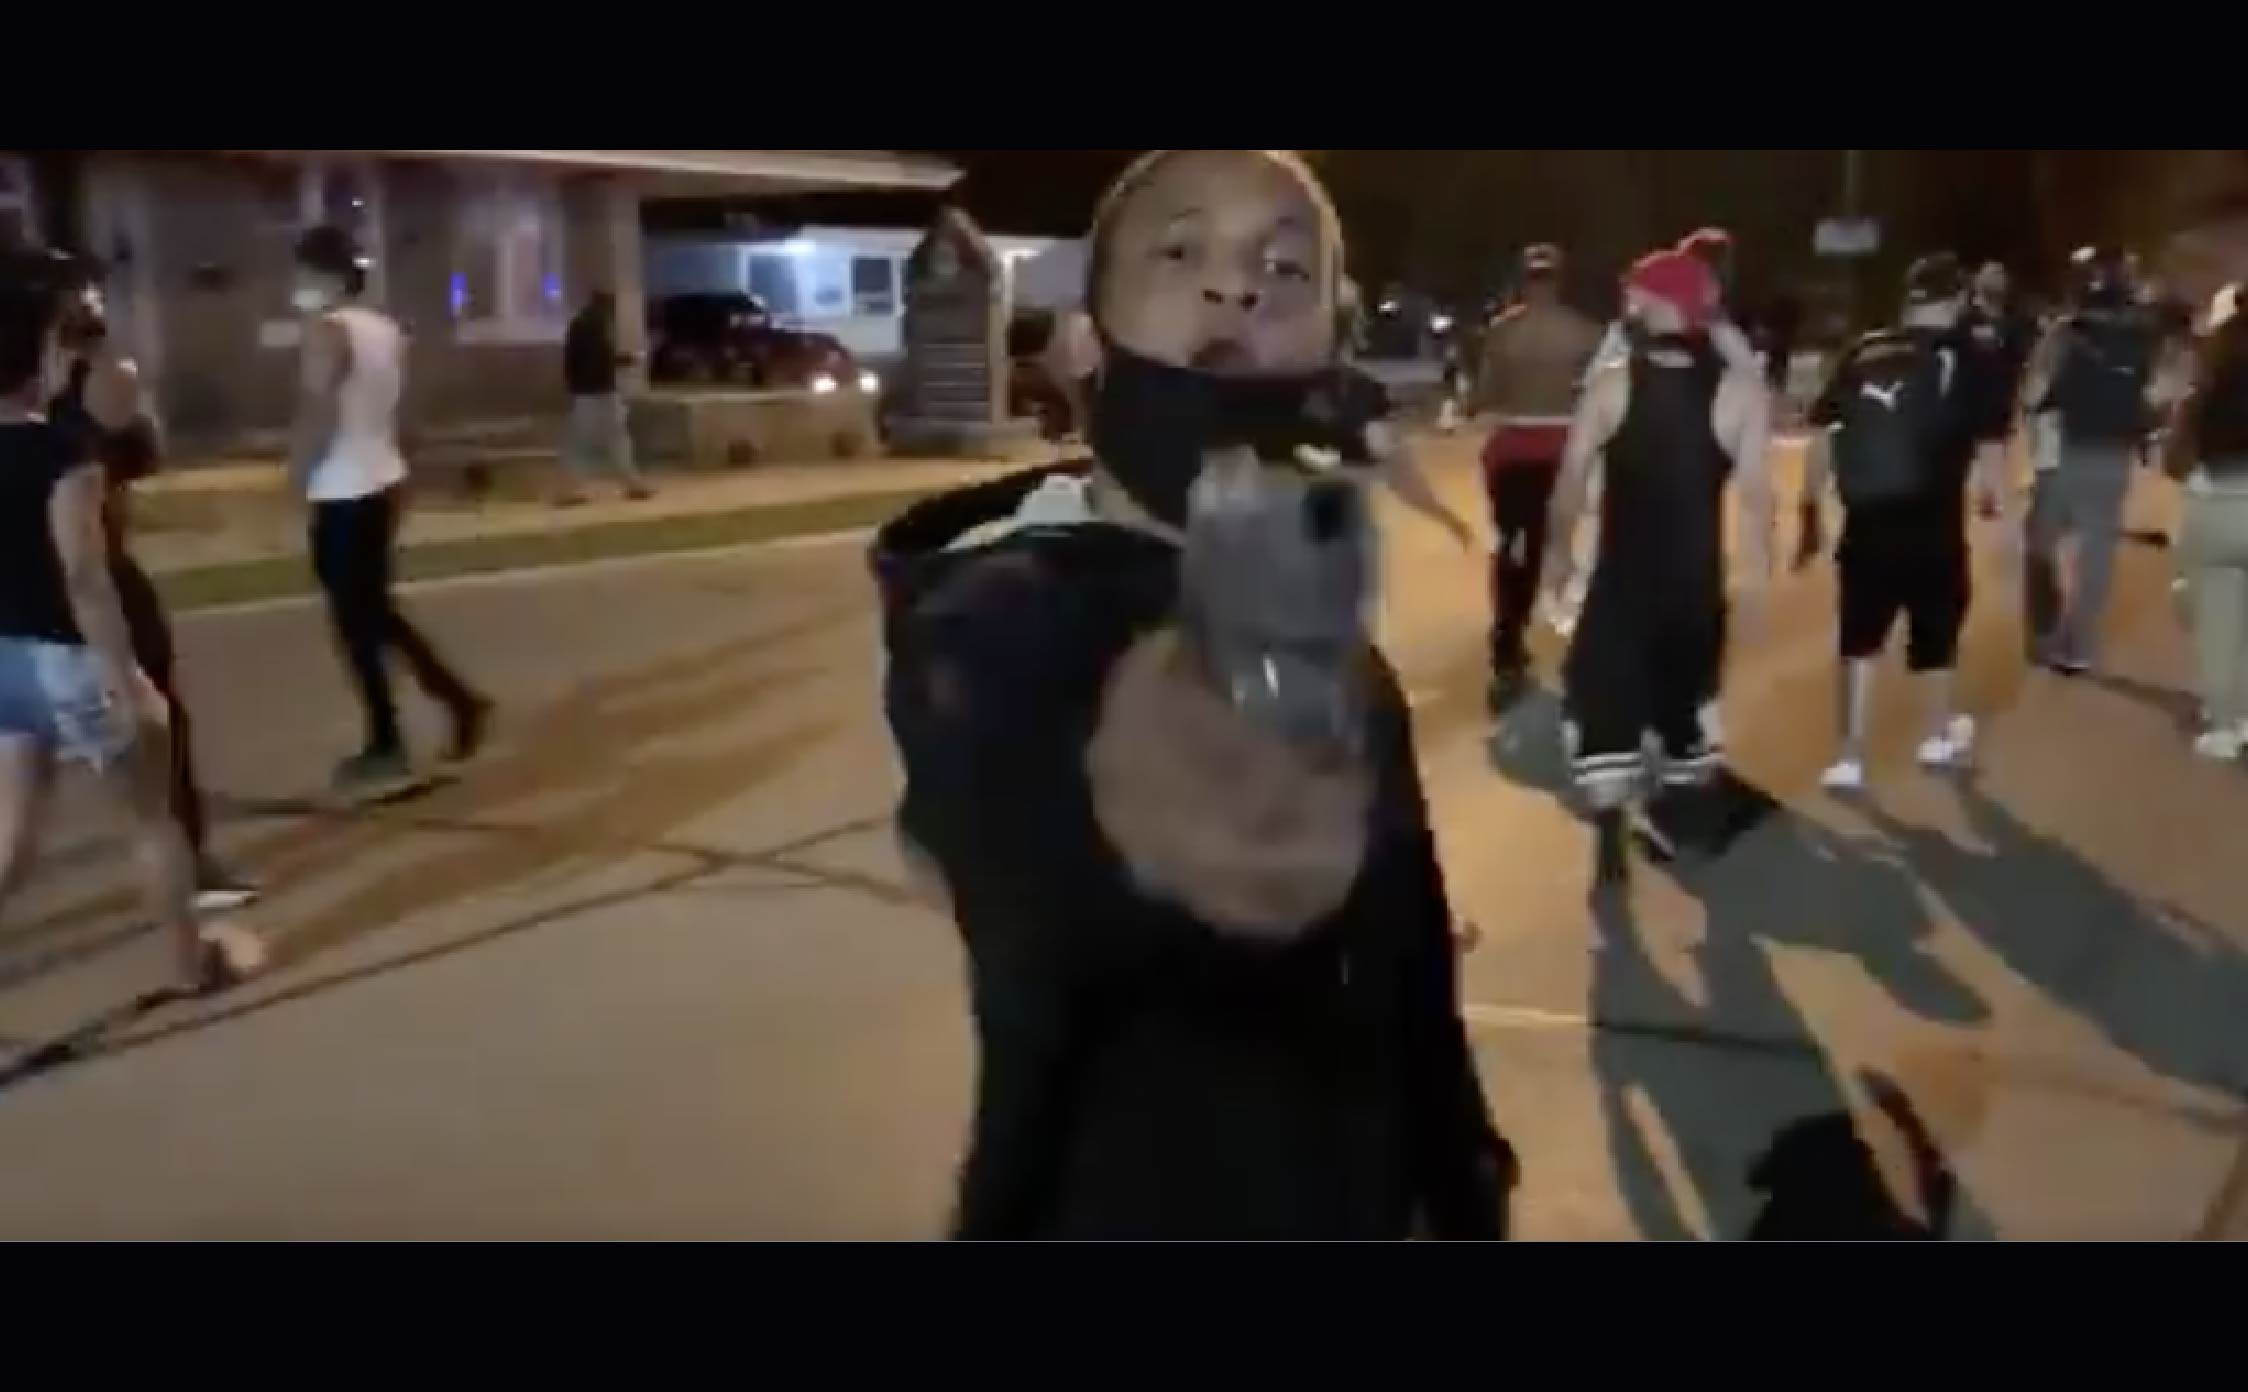 [VIDEO] BLM Supporter Pulls Gun on Conservative Reporter Who Was interviewing Him in Kenosha